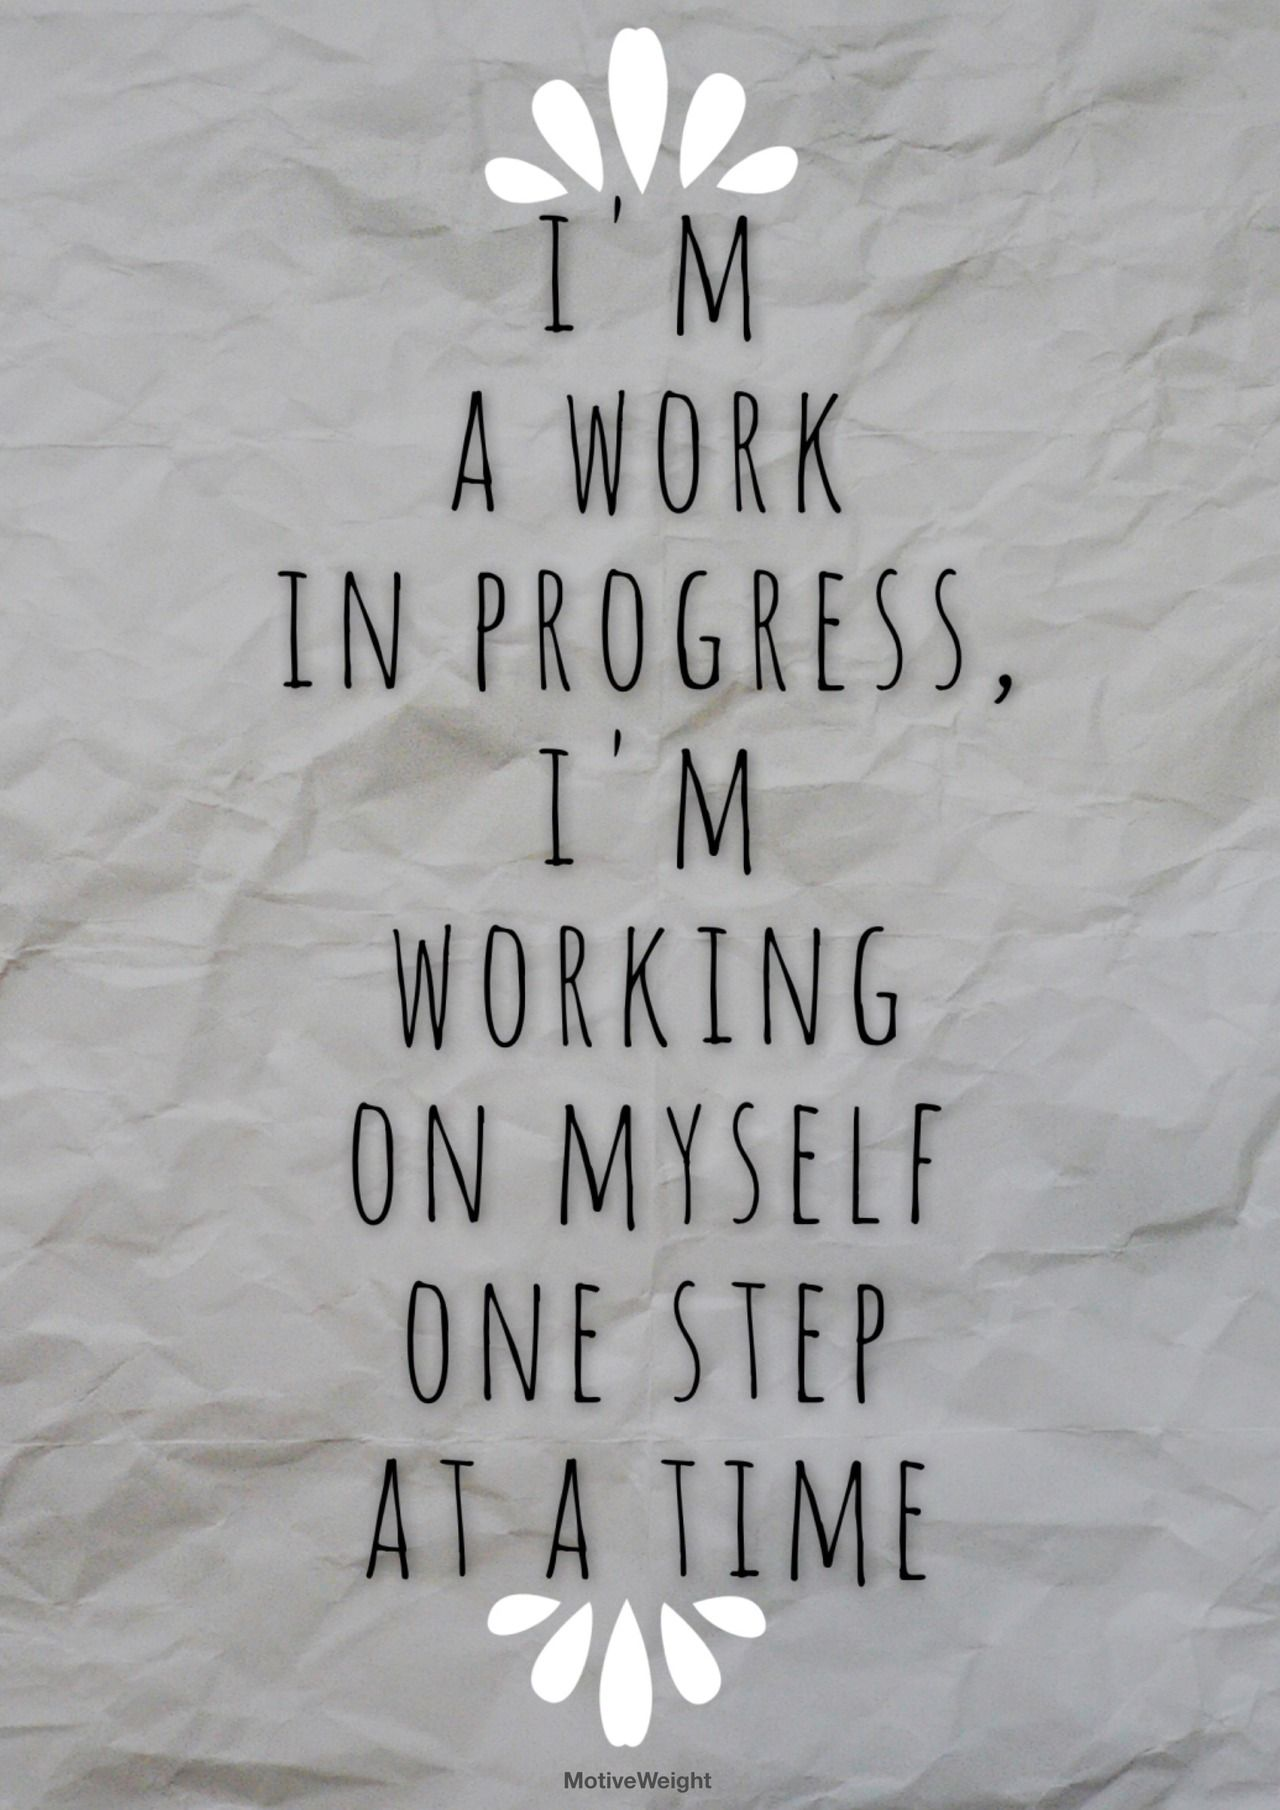 I M A Work In Progress I M Working On Myself One Step At A Time Work In Progress Quotes Progress Quotes Quotes To Live By